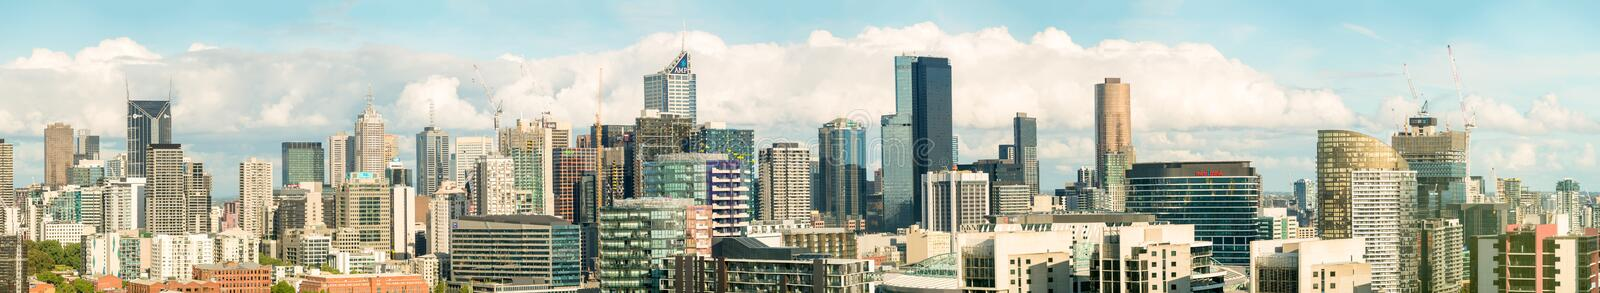 MELBOURNE, AUSTRALIA - Beautiful city hi-res panoramic view. Mel royalty free stock photography